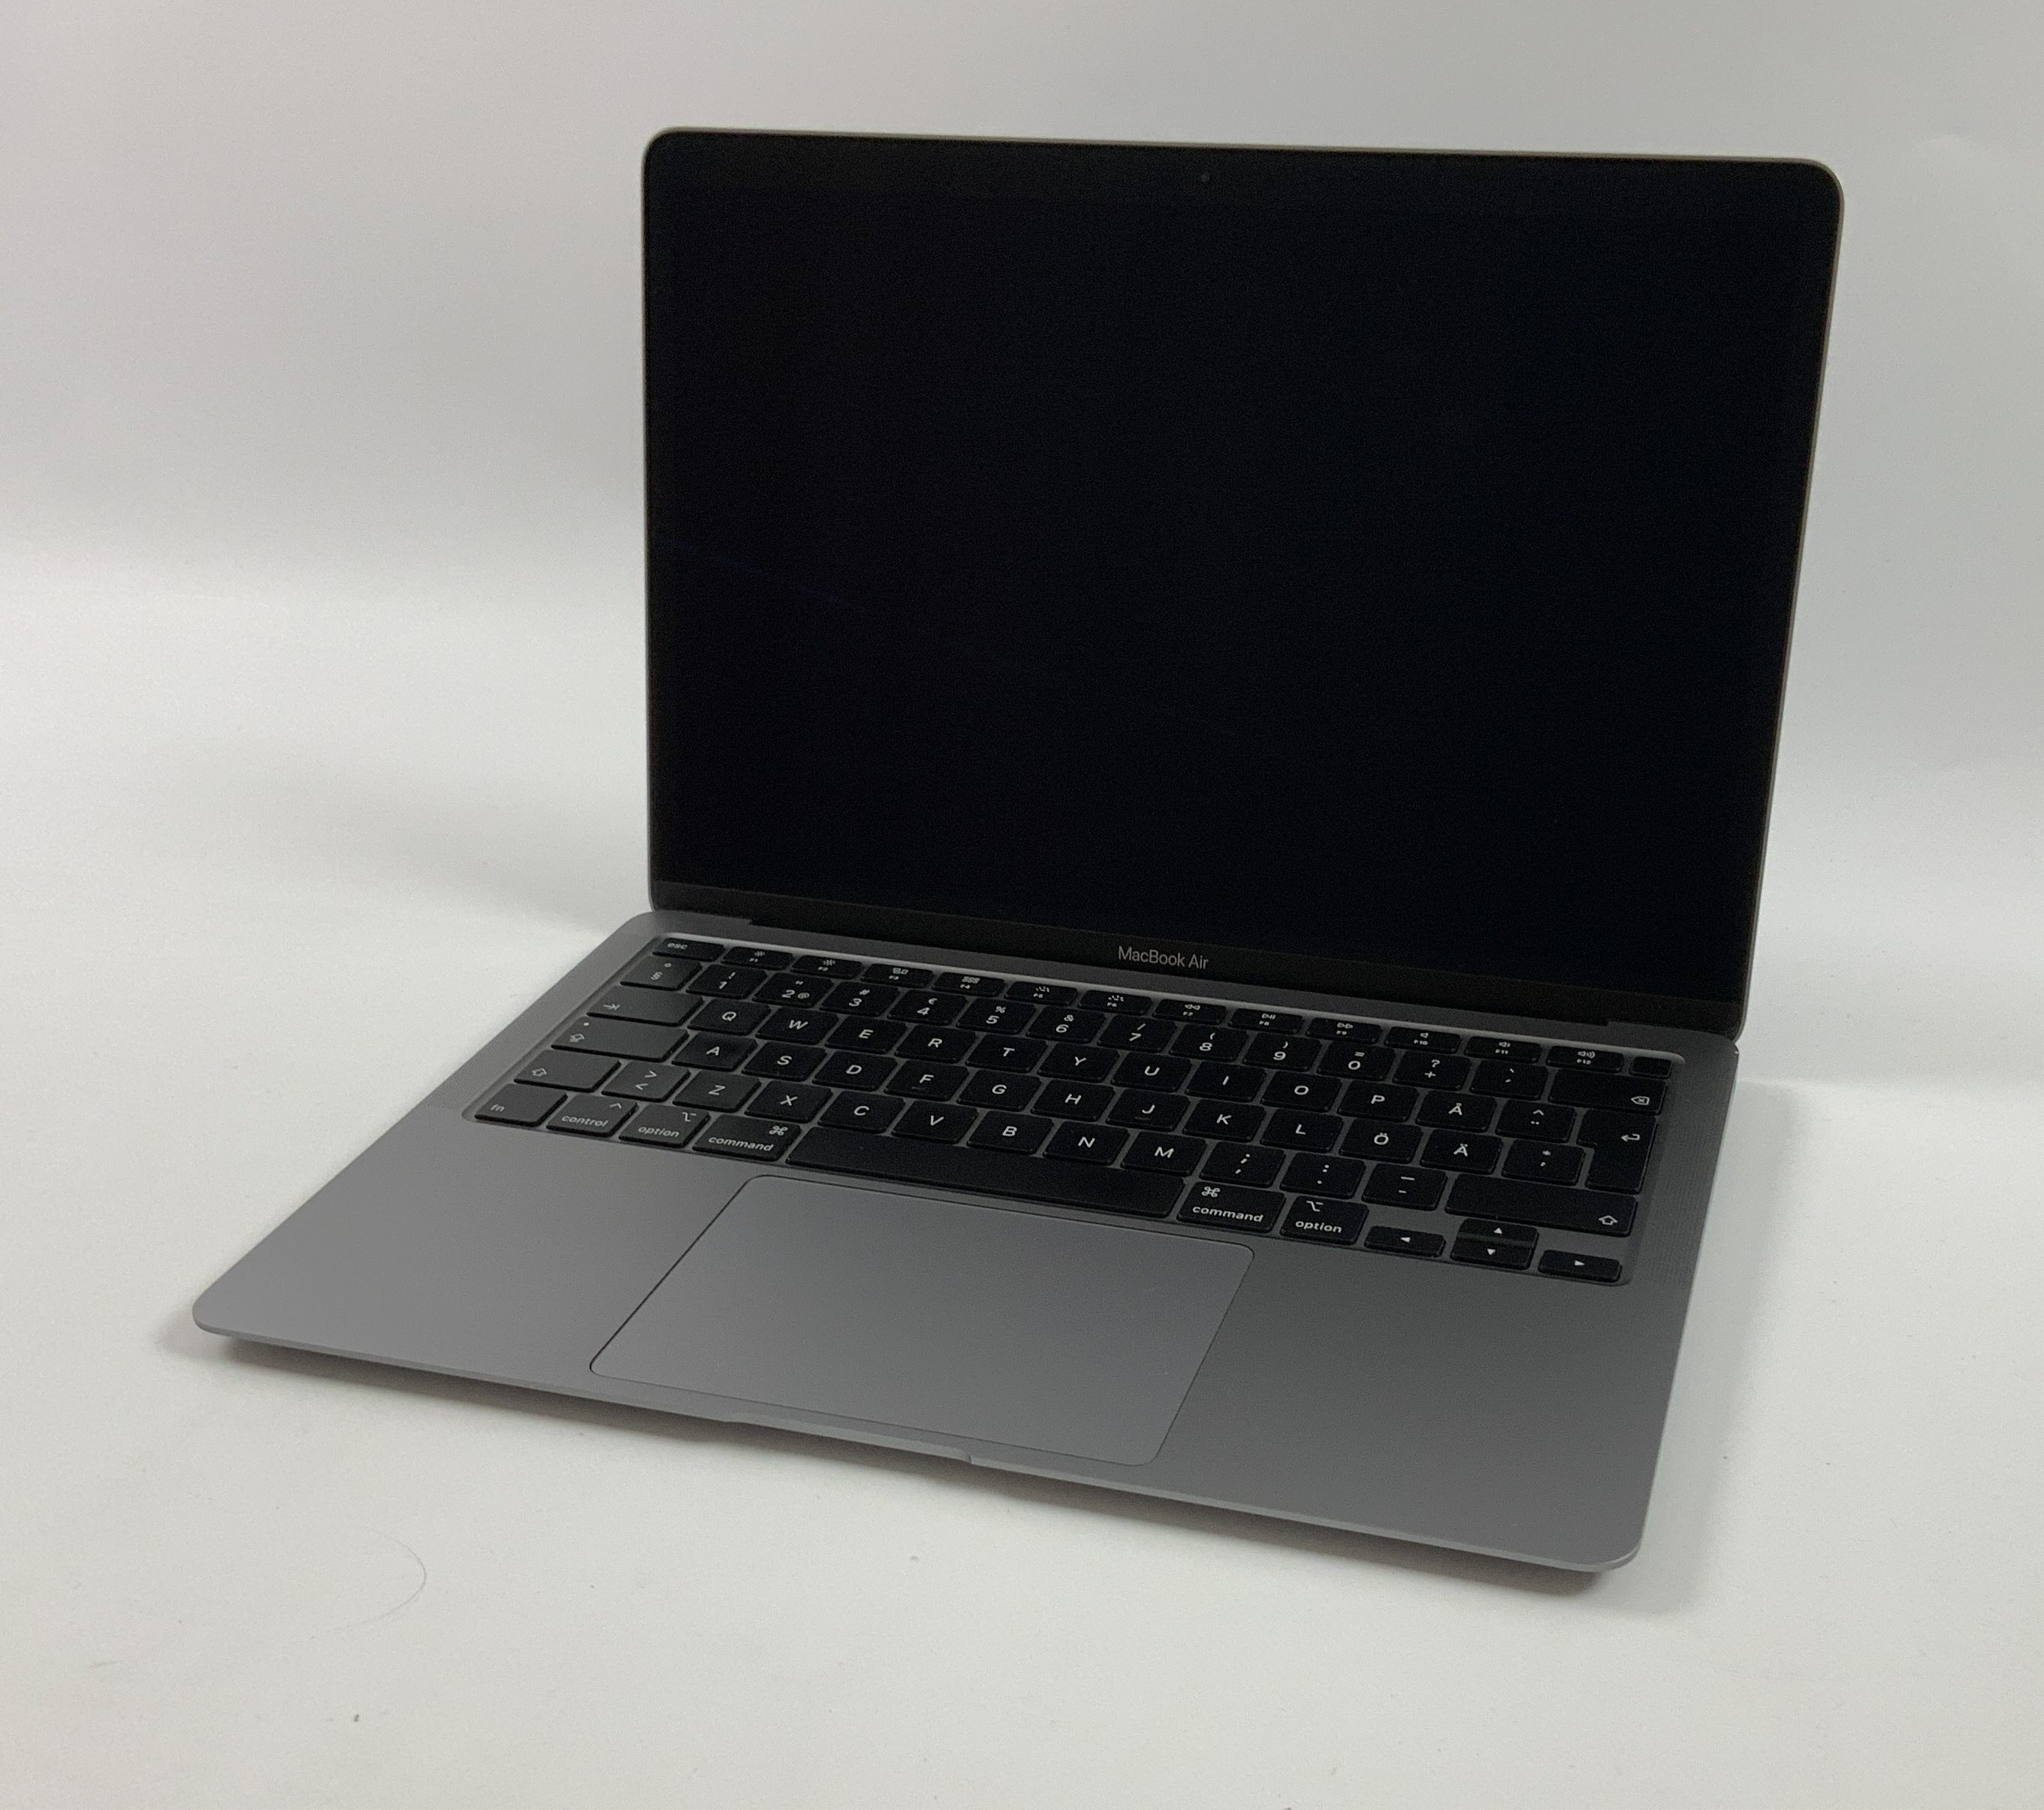 "MacBook Air 13"" Early 2020 (Intel Core i3 1.1 GHz 8 GB RAM 256 GB SSD), Space Gray, Intel Core i3 1.1 GHz, 8 GB RAM, 256 GB SSD, Kuva 1"